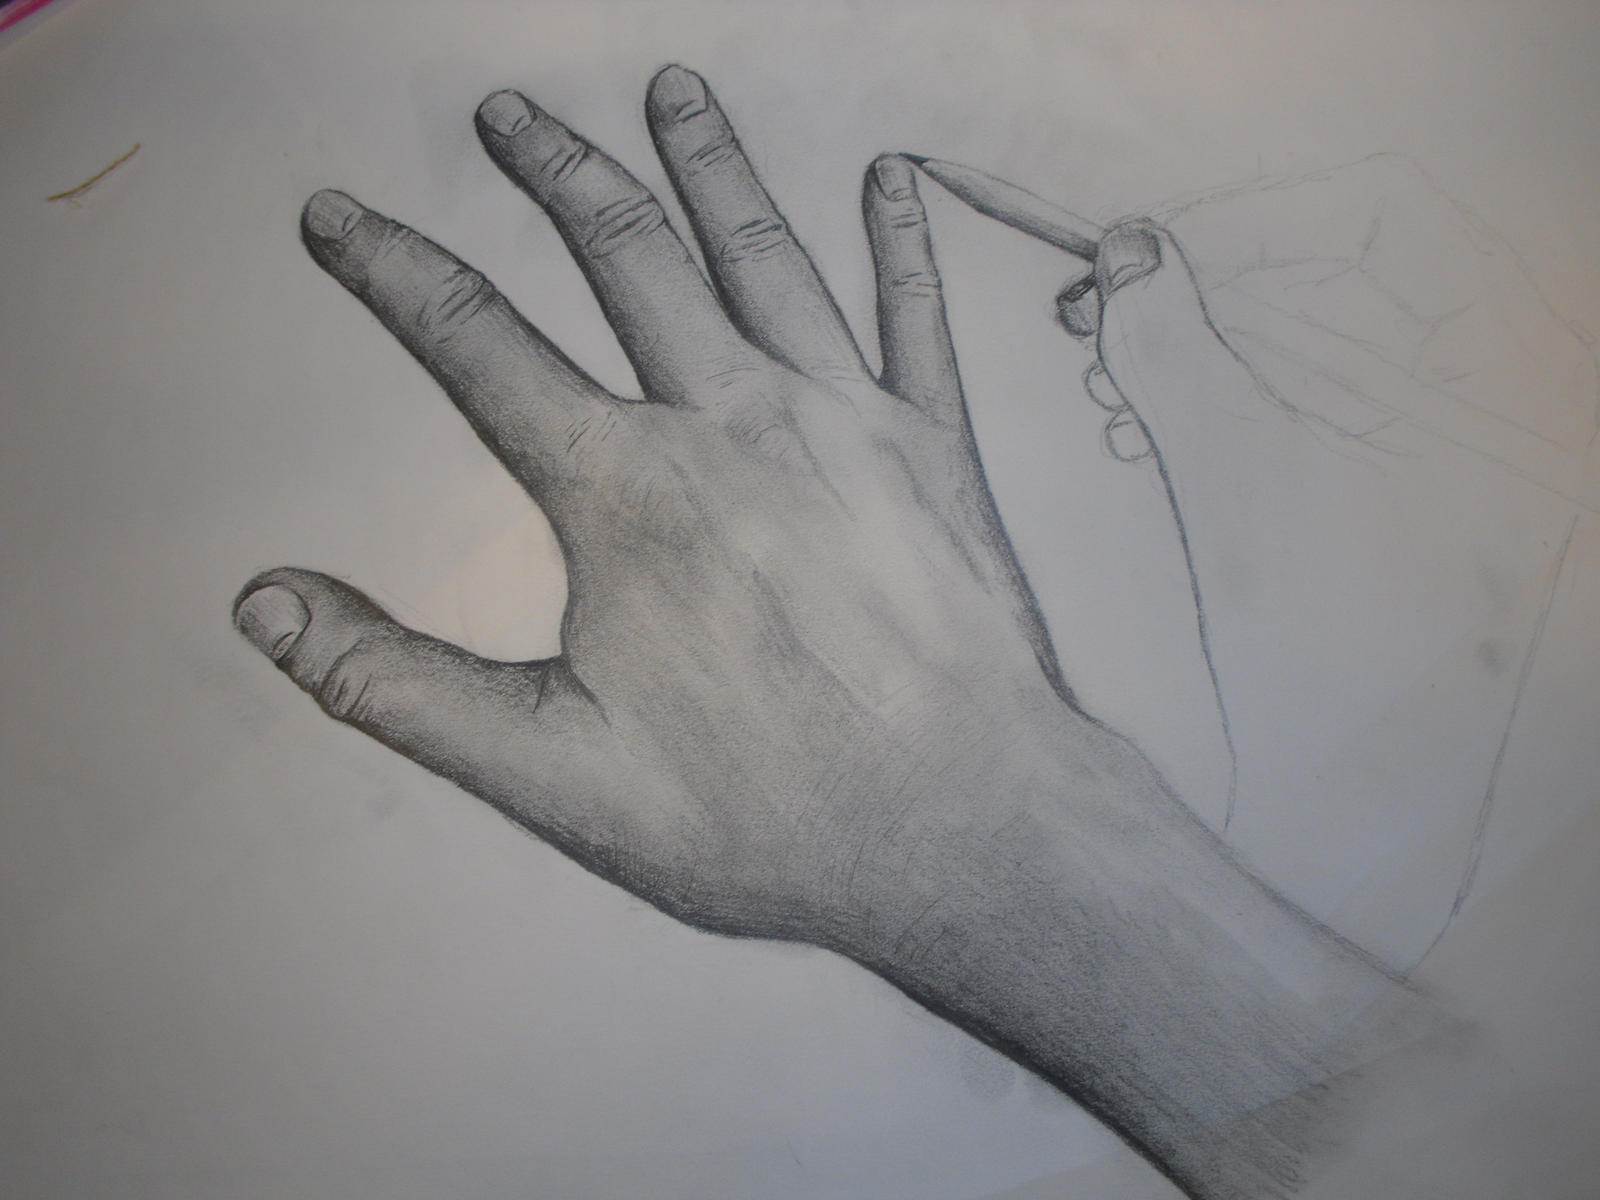 3d Line Drawing Hand : Hand getting drawn by line art theonlyjwh t on deviantart